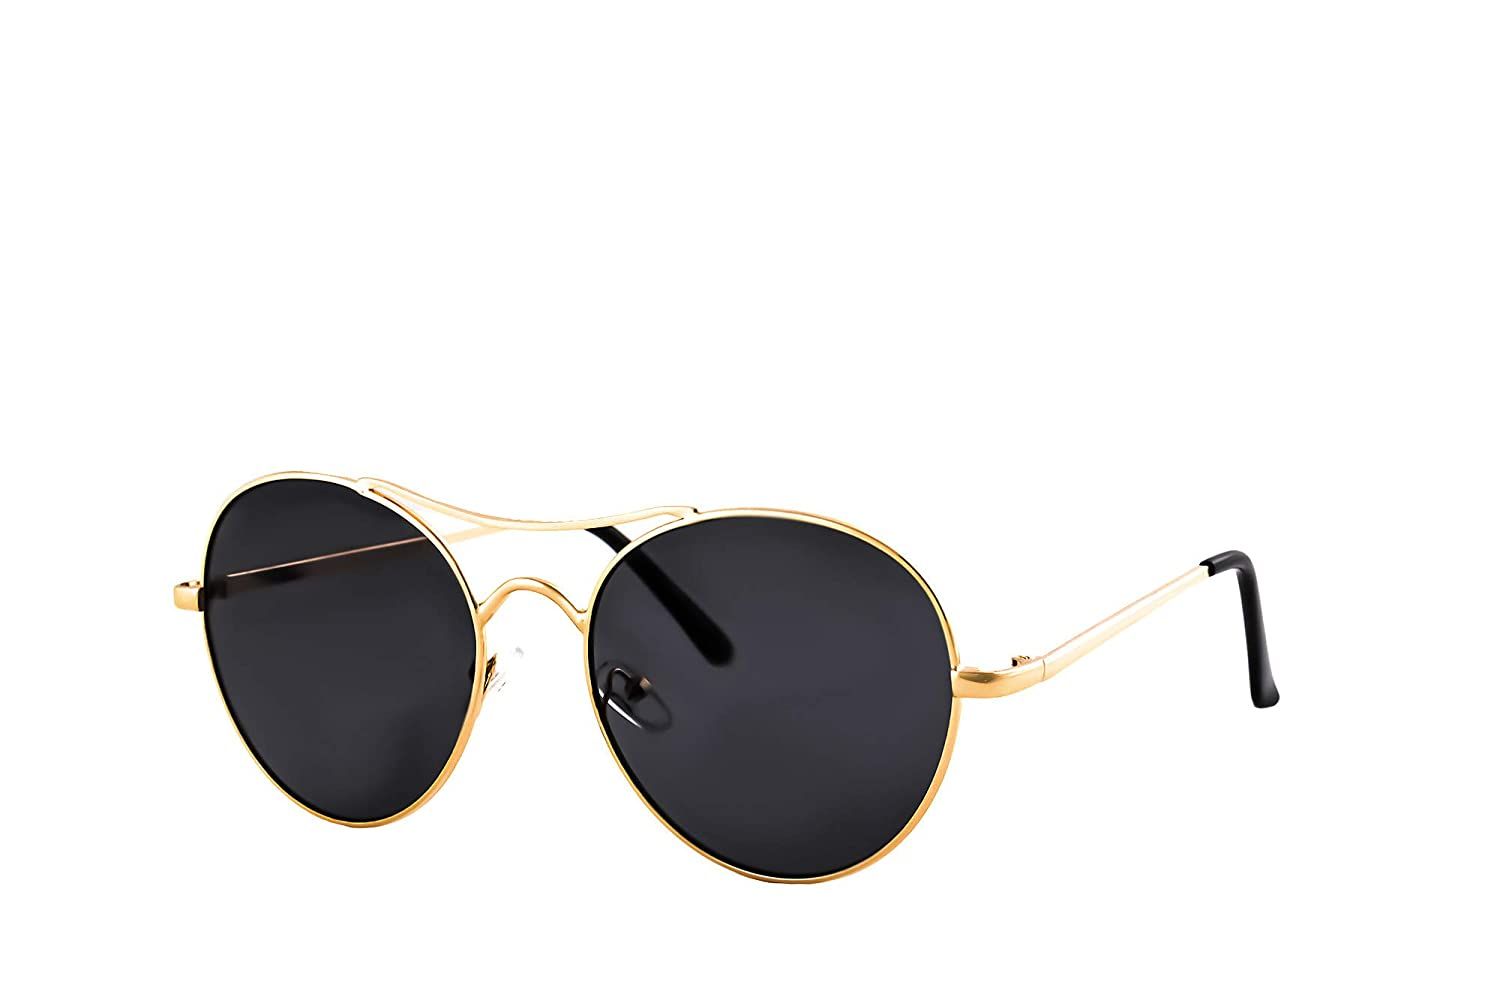 IVOZZO New Round Aviator Style Mirrored Lens Metal Frame Sunglasses